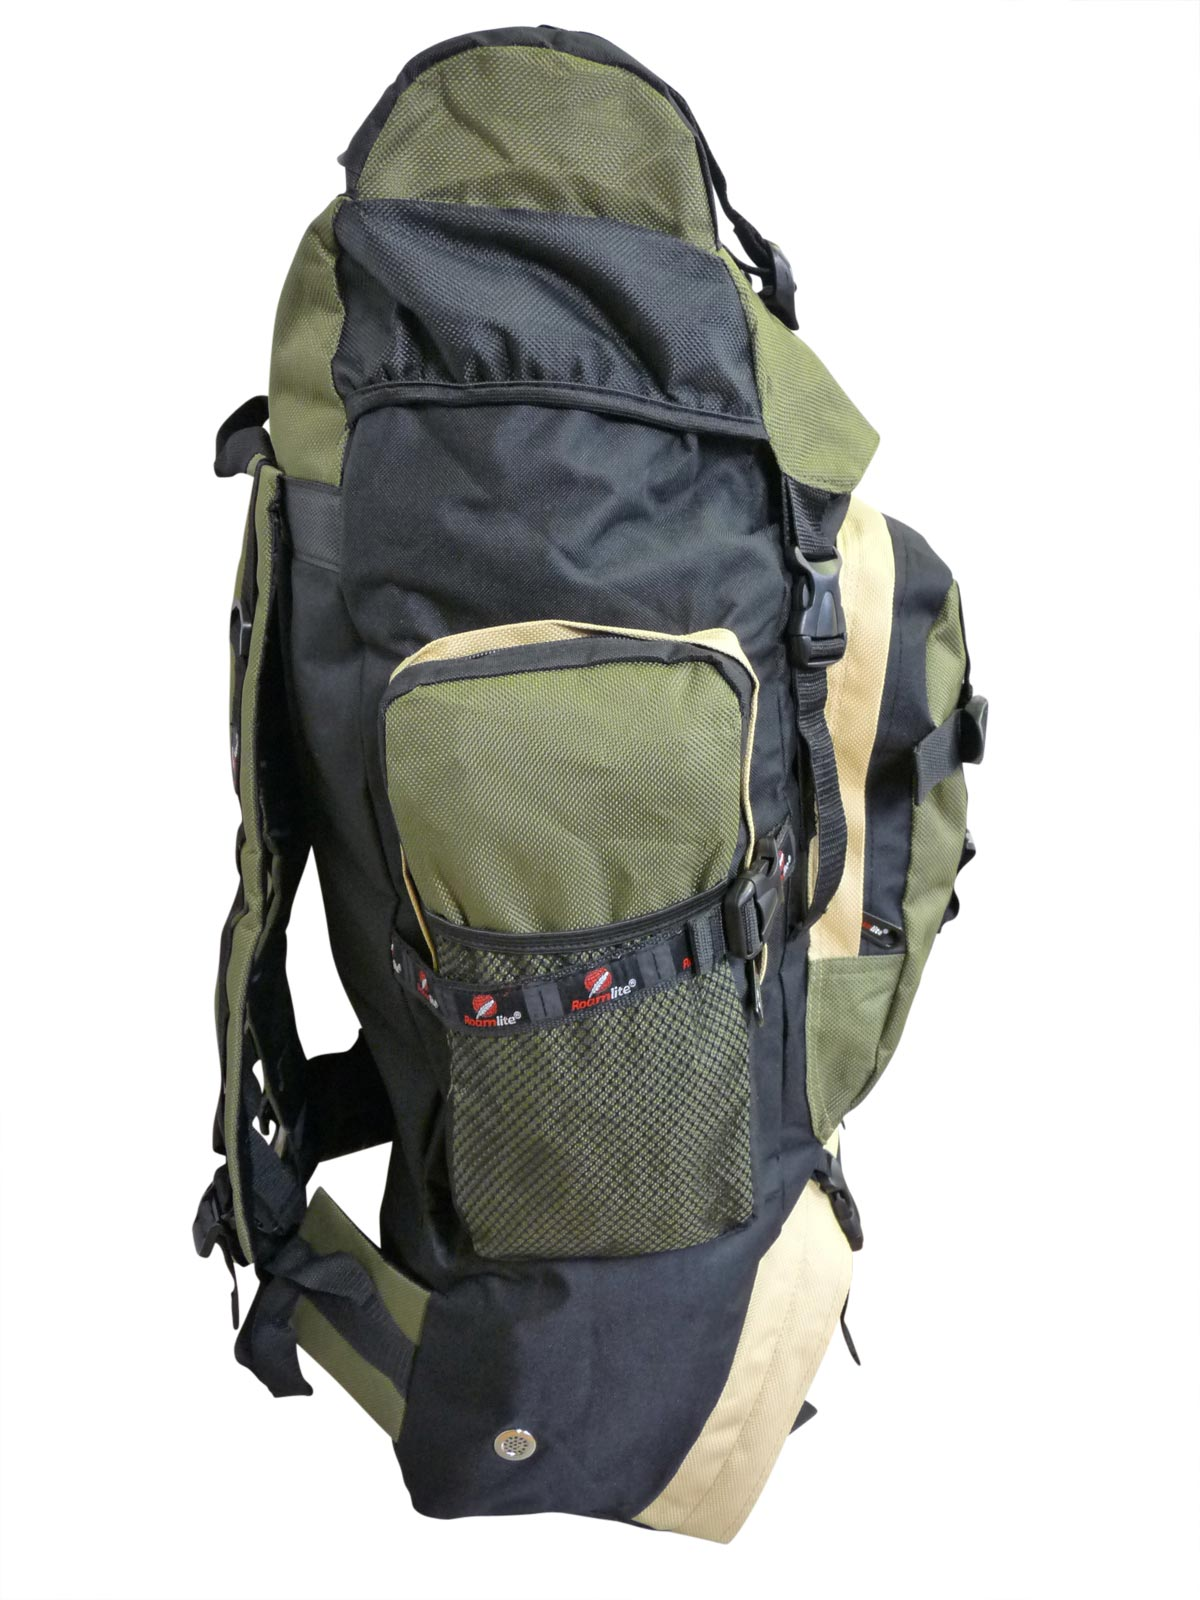 Large XL Camping Festival Backpack RL15KGss